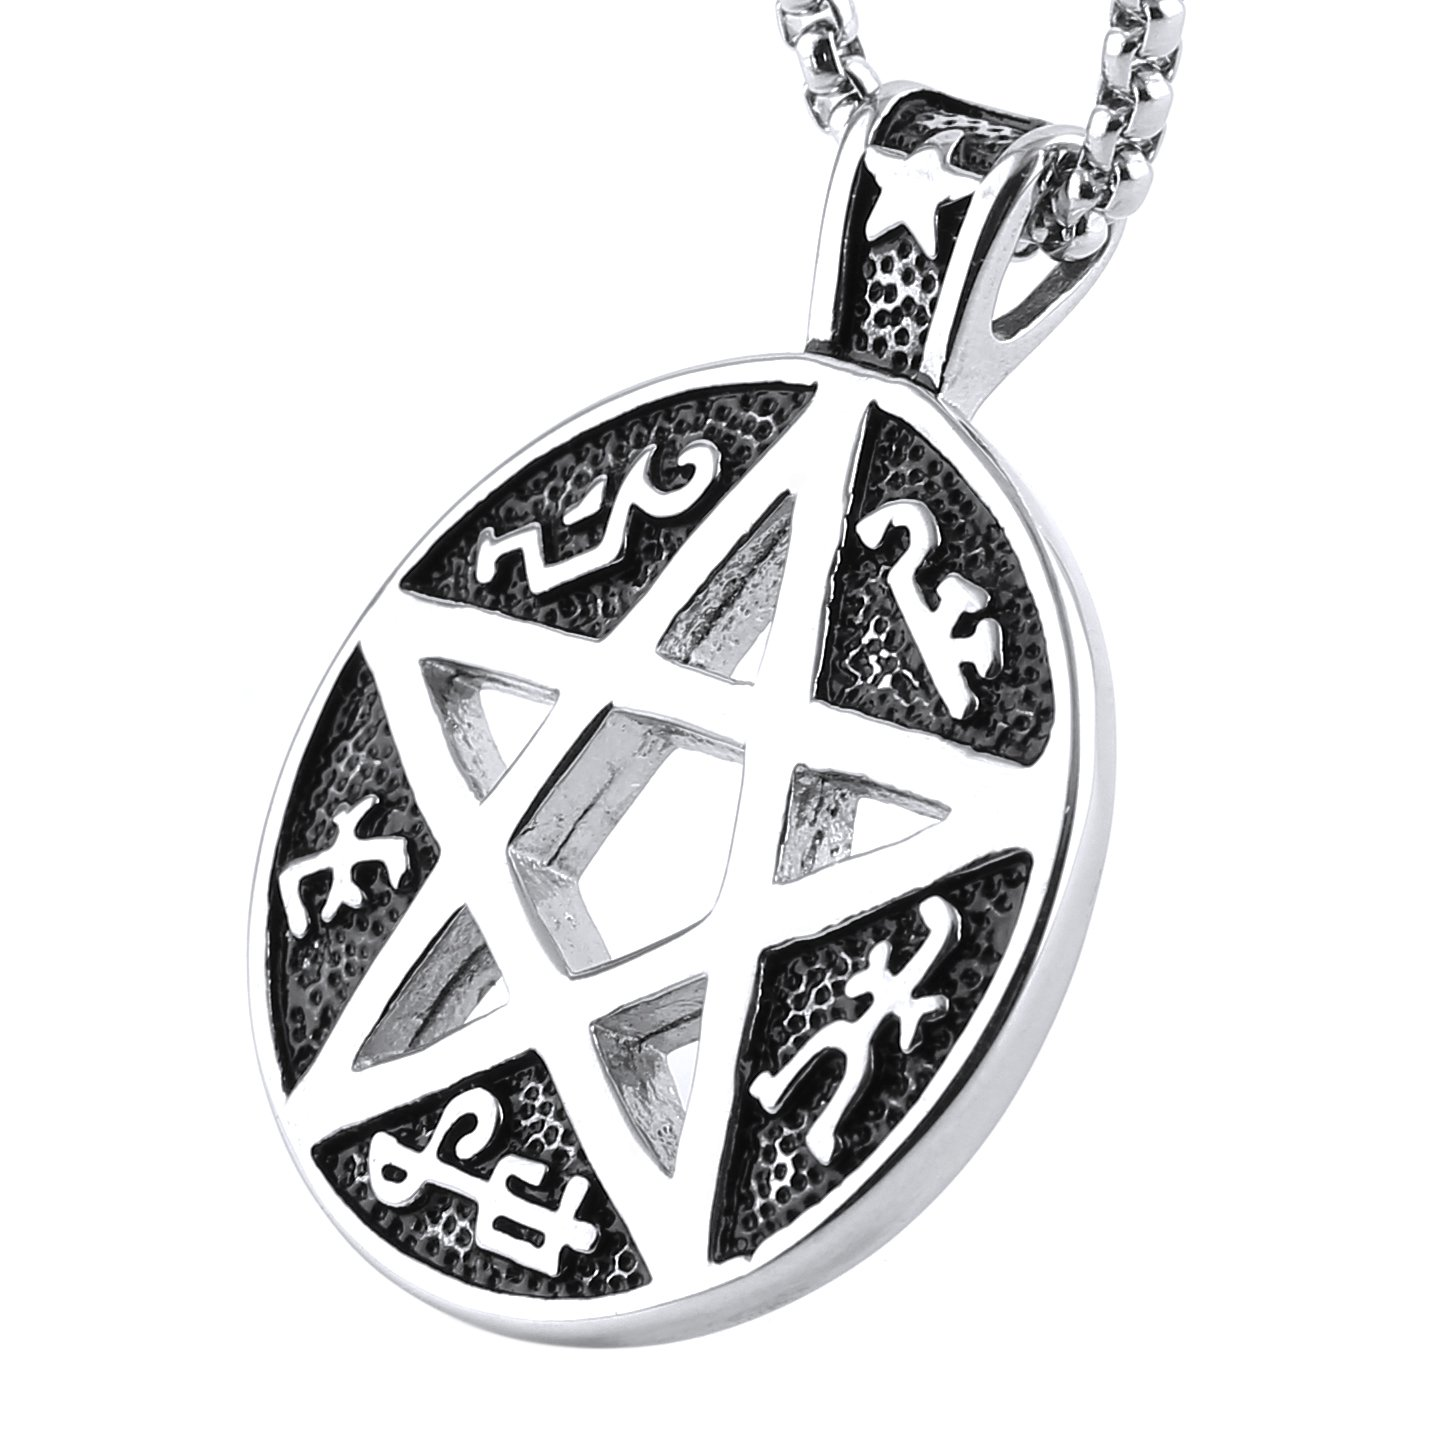 HZMAN Supernatural Devils Trap Symbol Sigil Stainless Steel Pendant  Necklace Pentagram Anti Possession